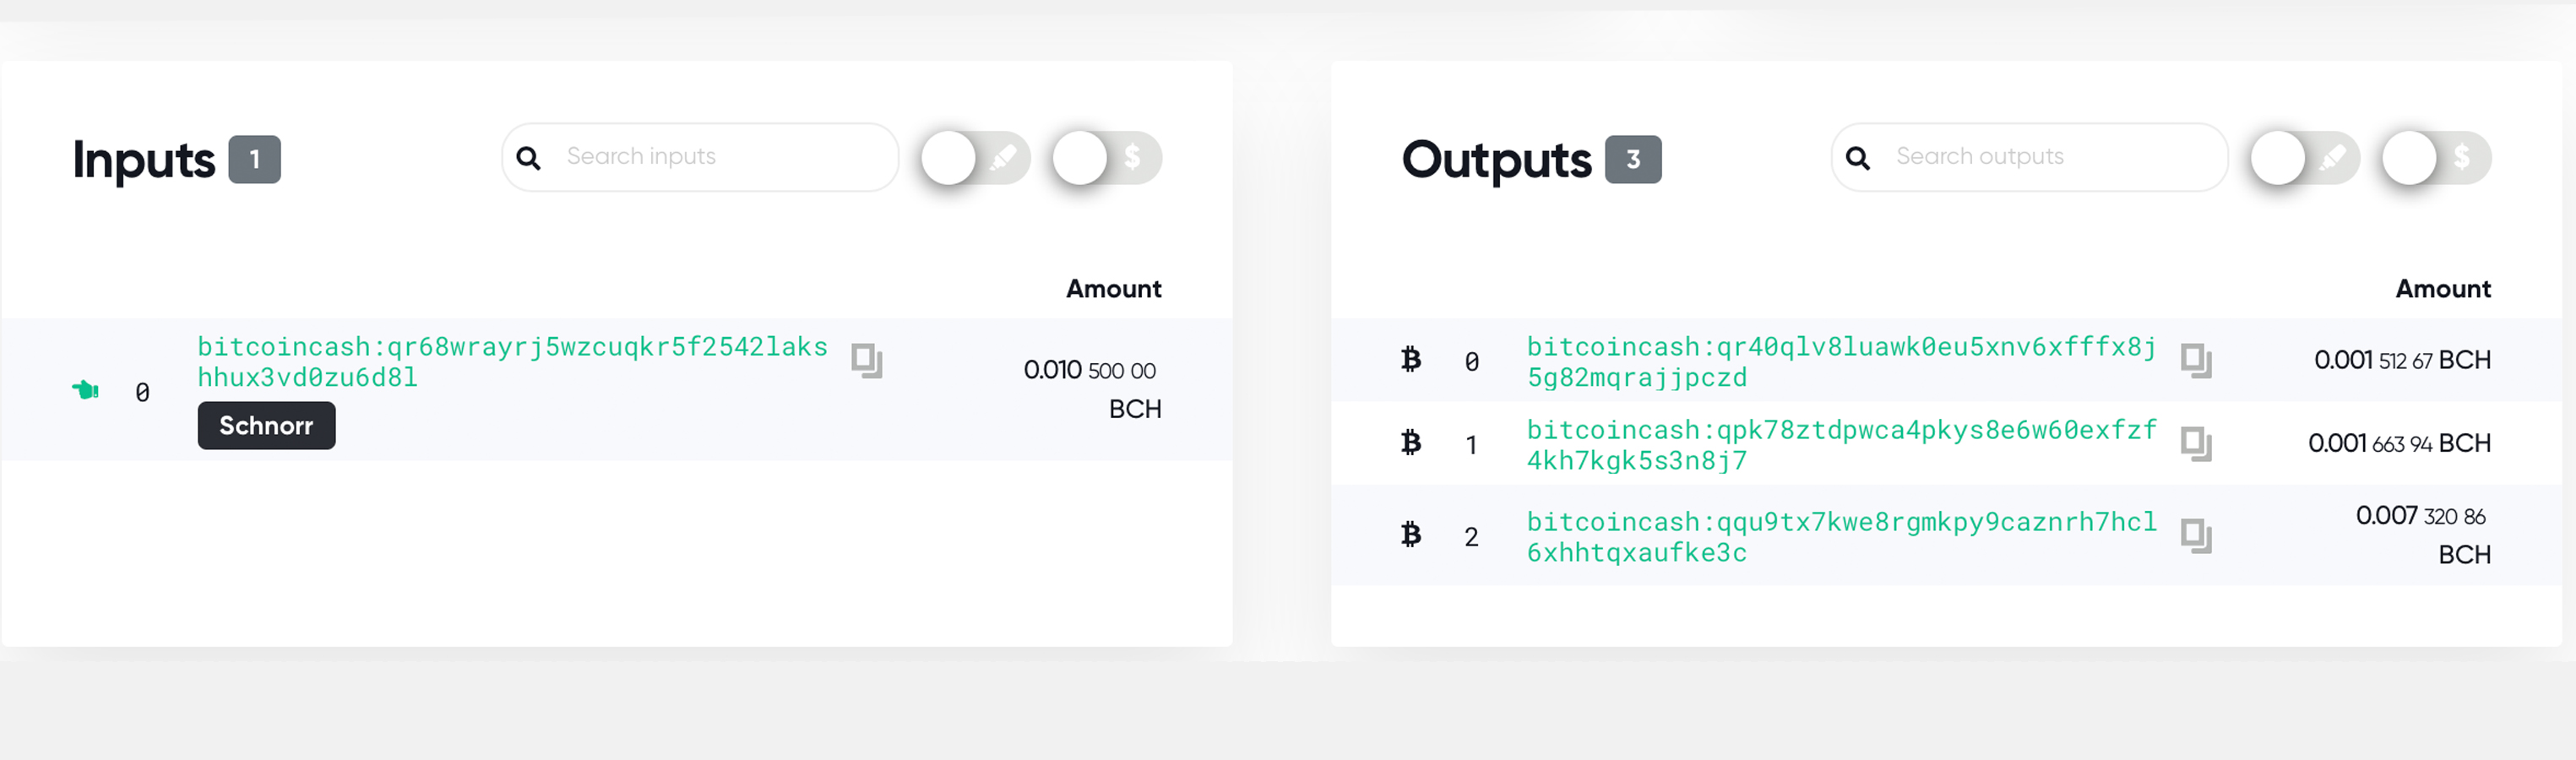 Send Token Payouts With Ease Using Bitcoin.com's SLP Dividend Calculator